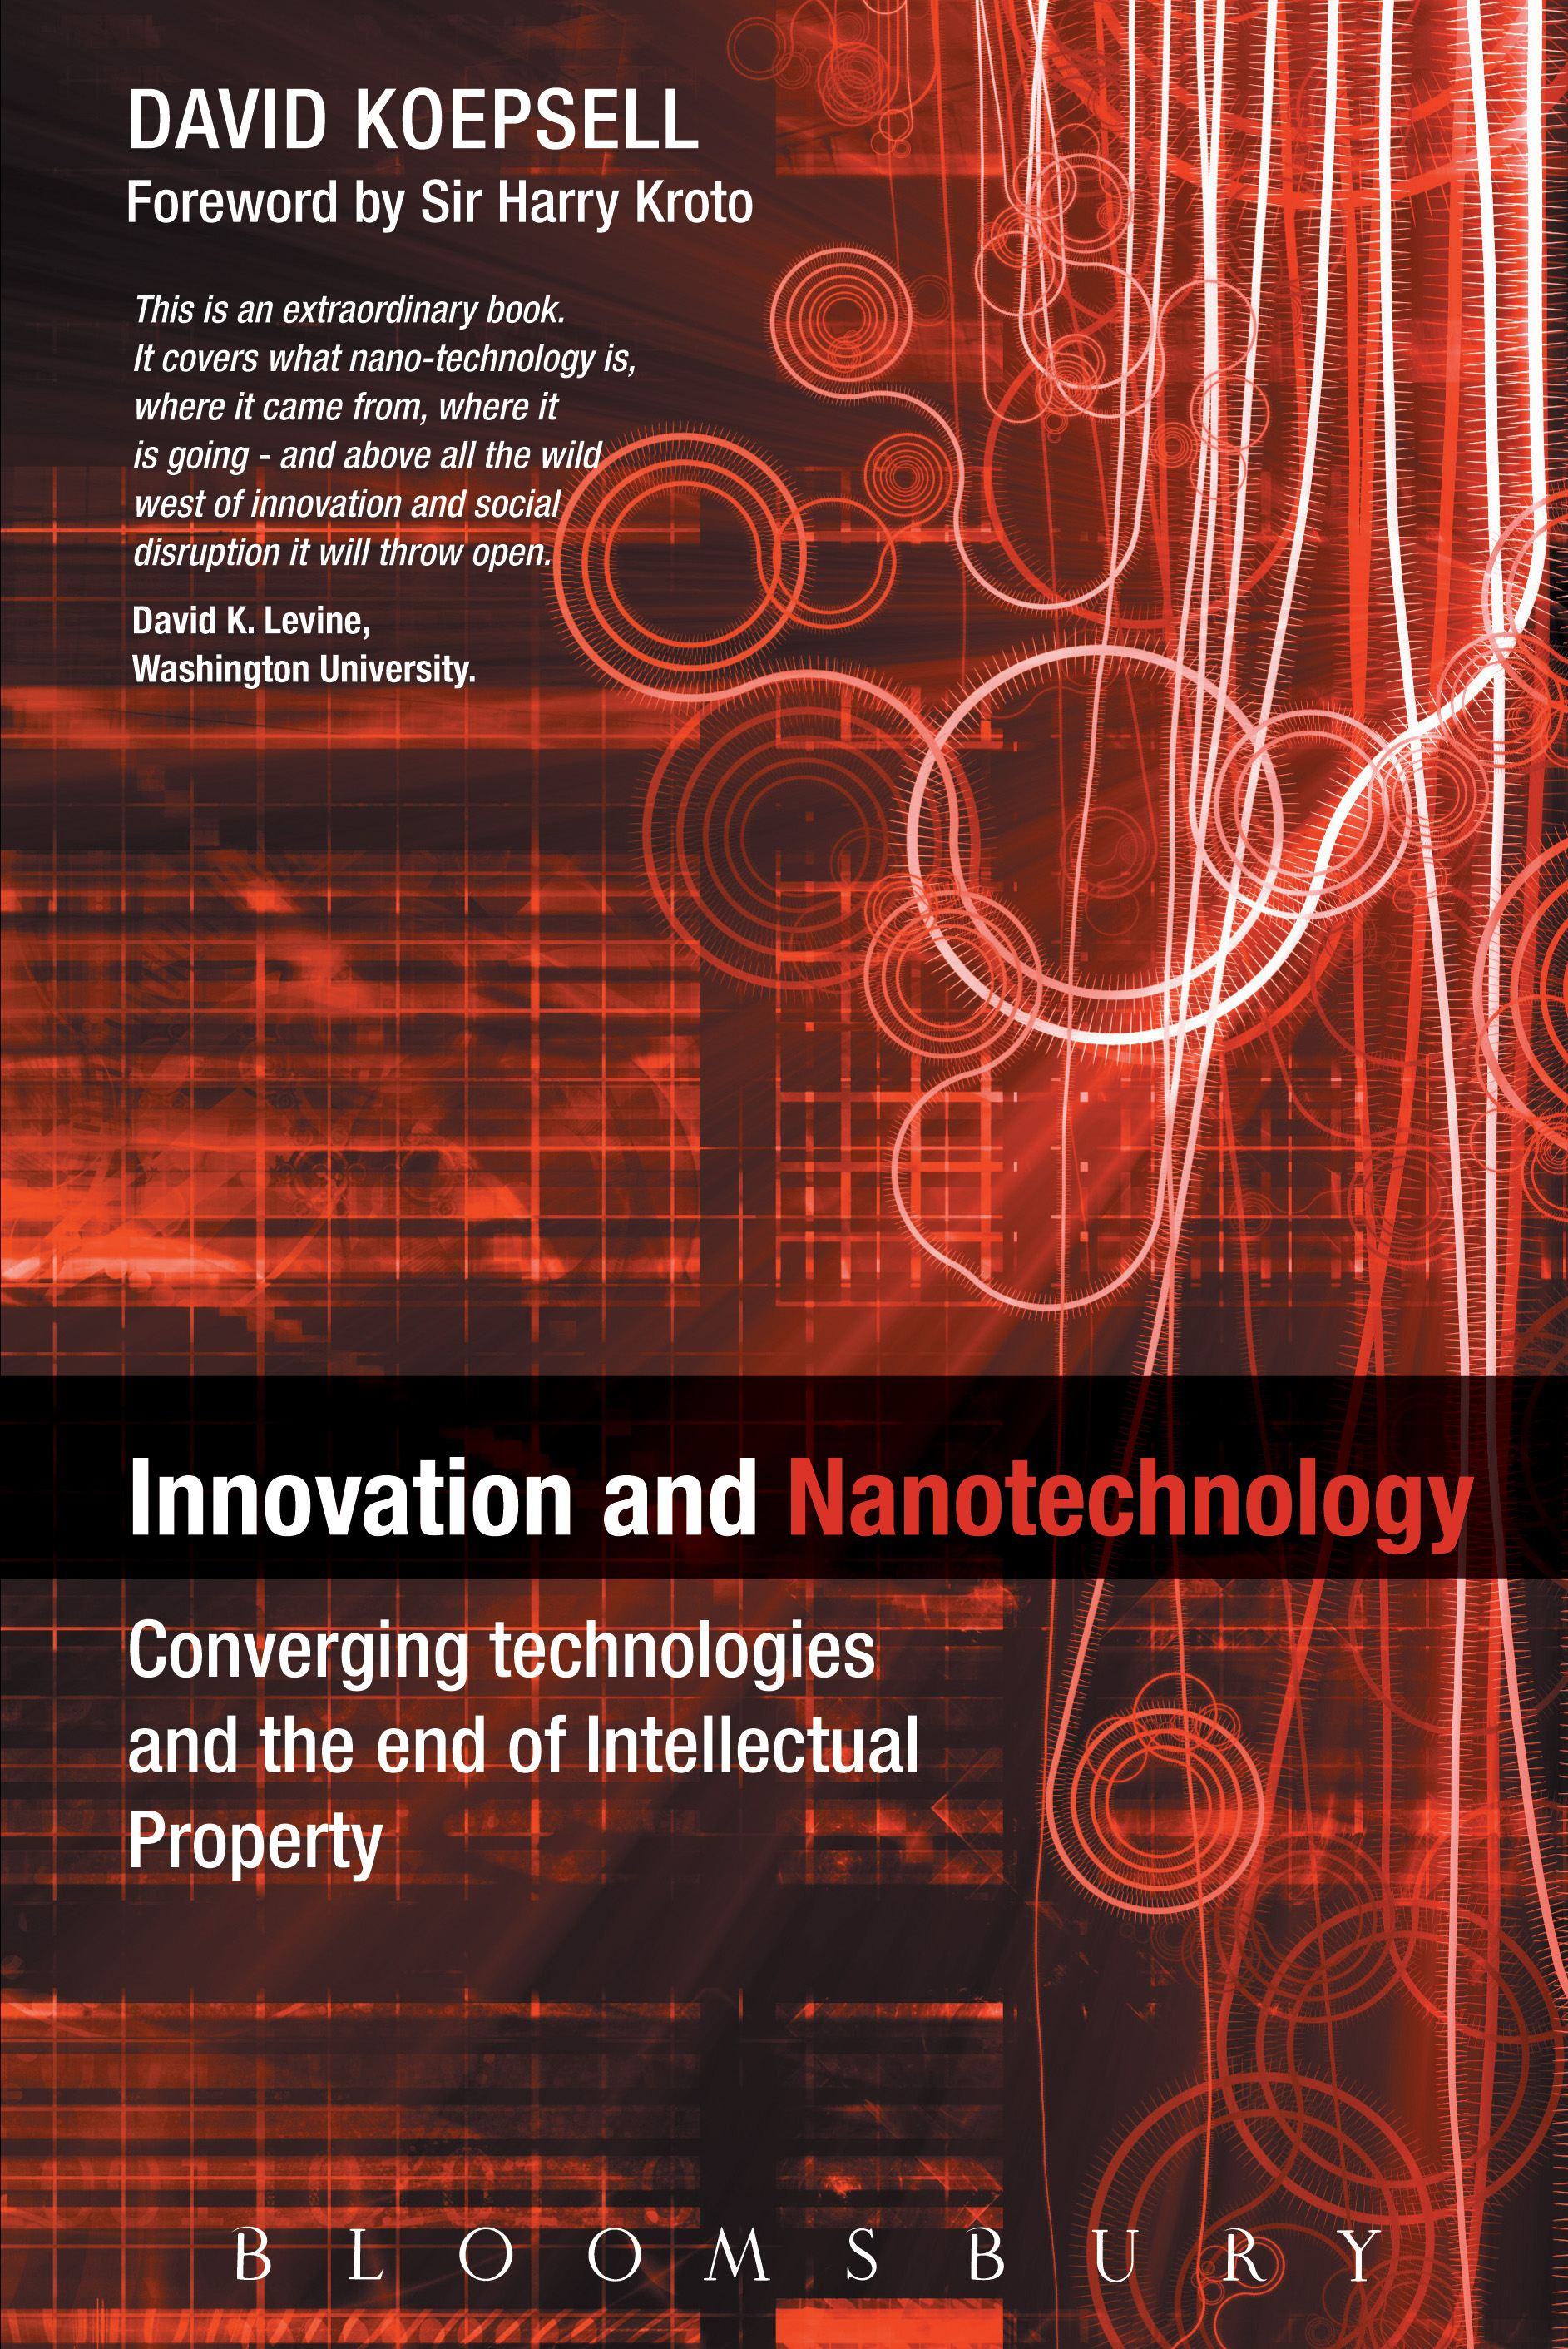 Innovation and Nanotechnology: Converging technologies and the end of Intellectual Property By: David Koepsell